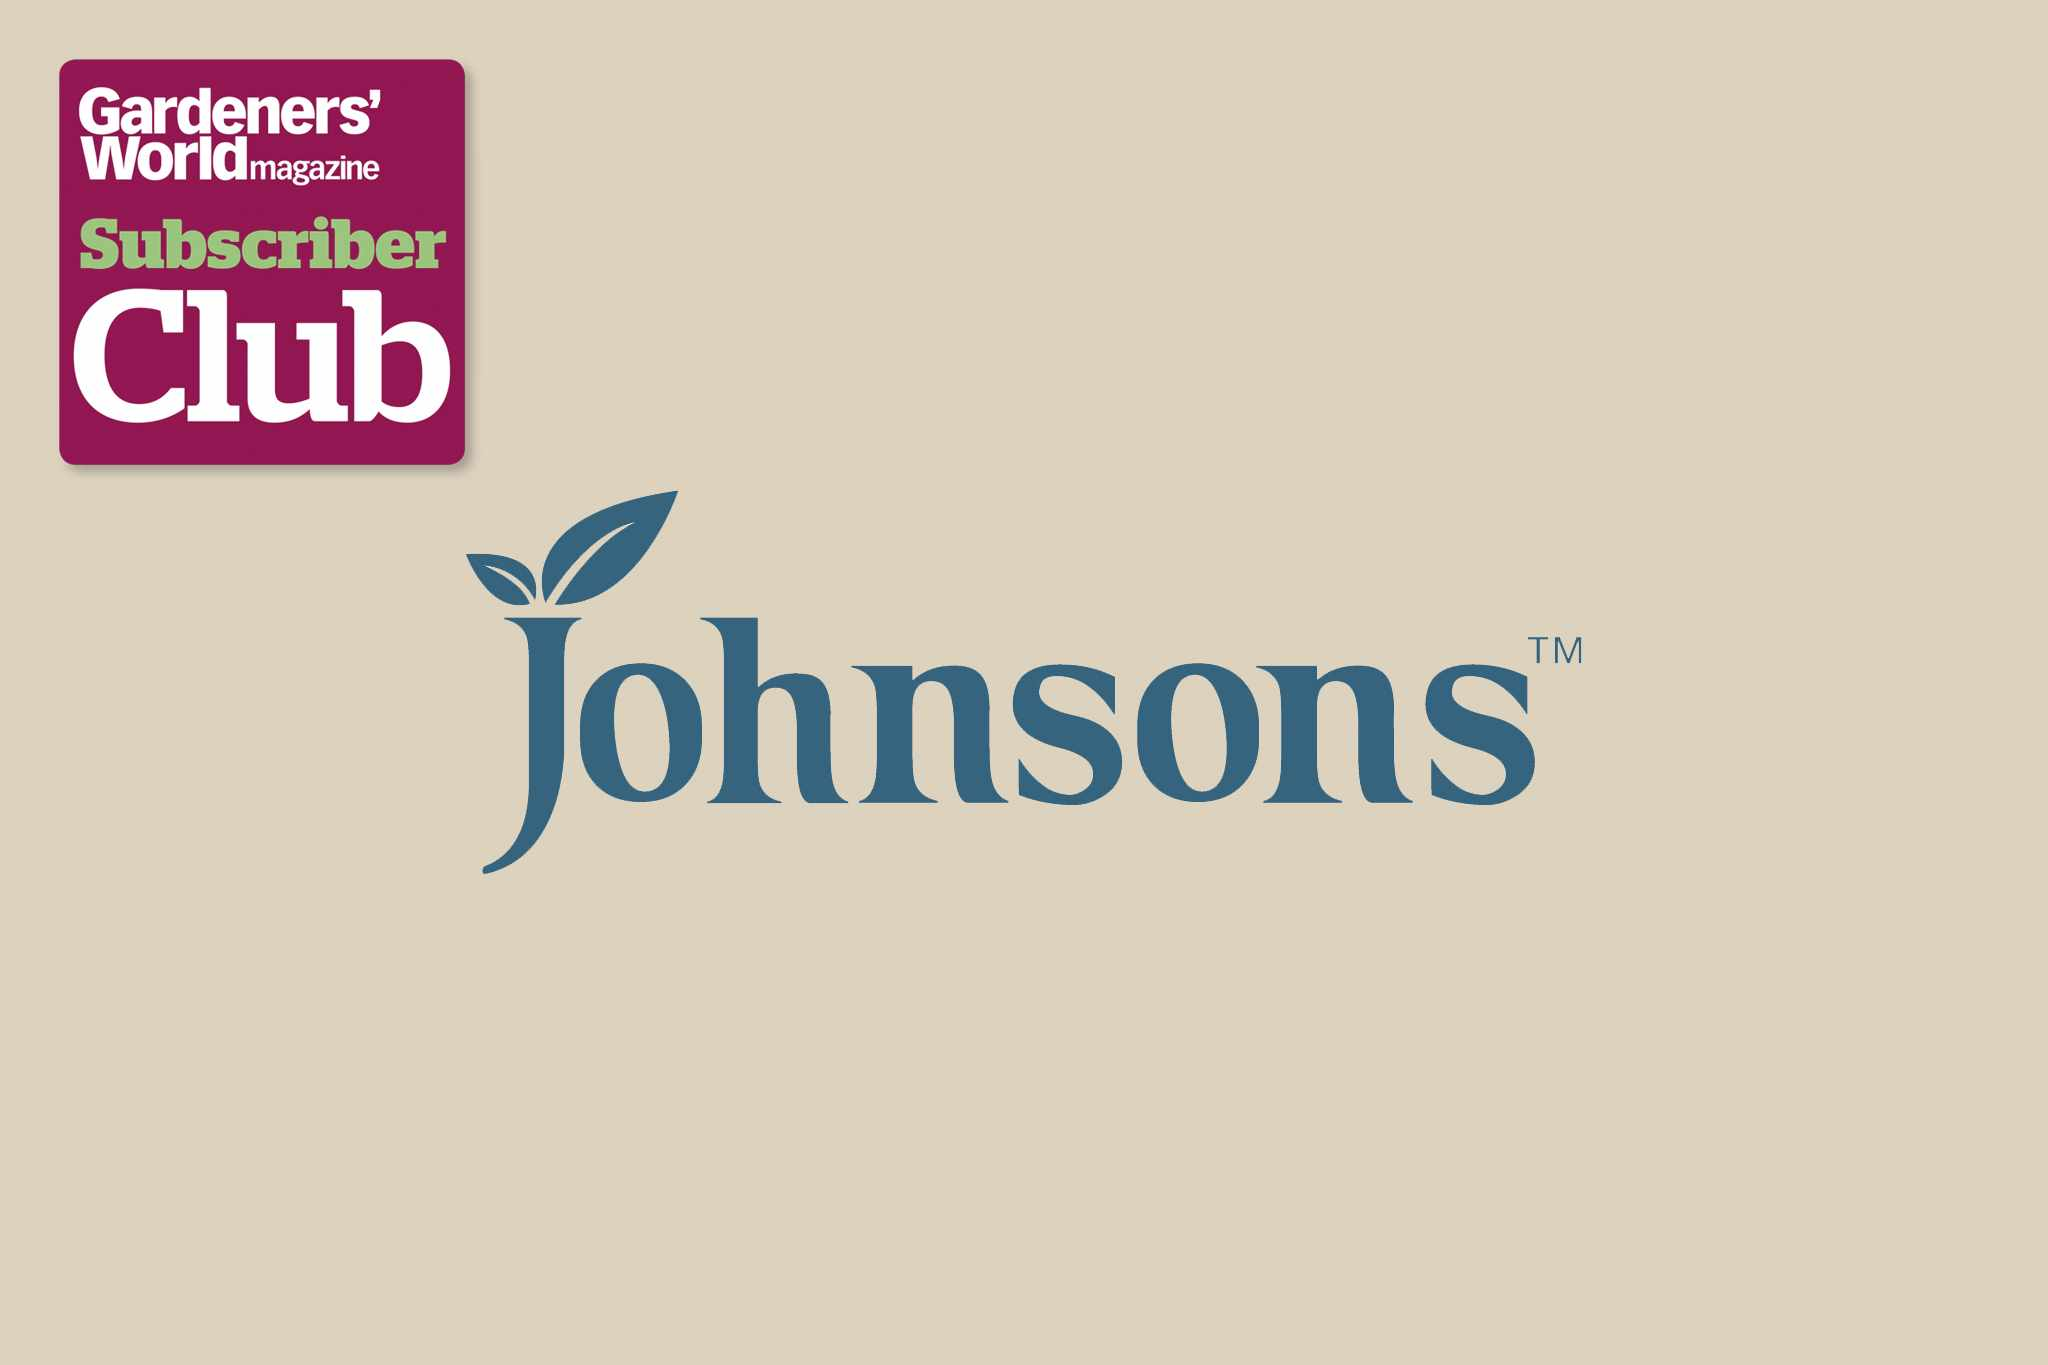 Johnsons BBC Gardeners' World Magazine Subscriber Club discount